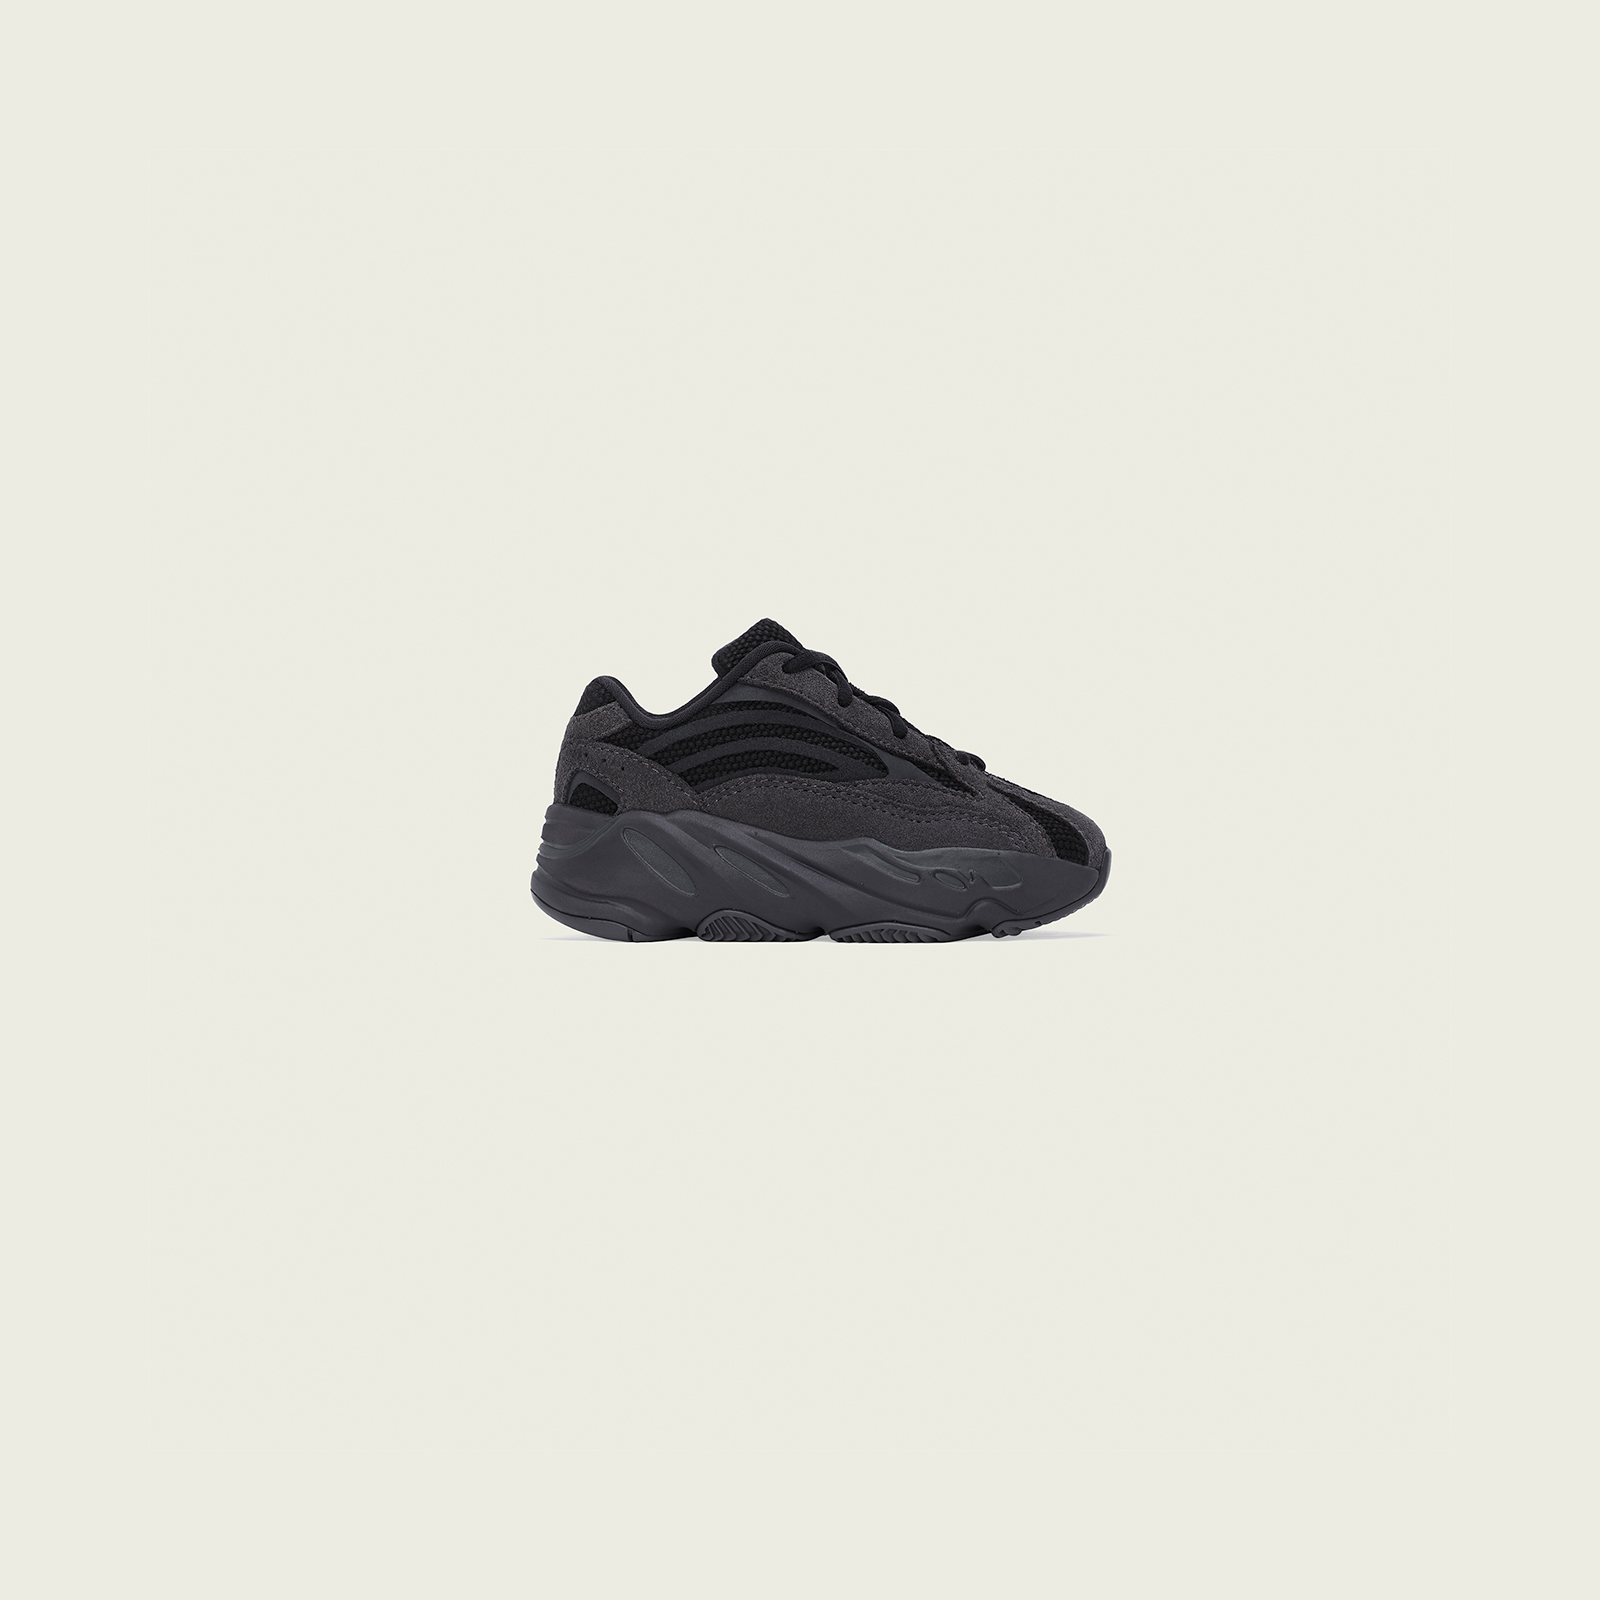 sports shoes f383f c0f3a adidas Yeezy Boost 700 V2 Infant - Fu6686 - Sneakersnstuff ...